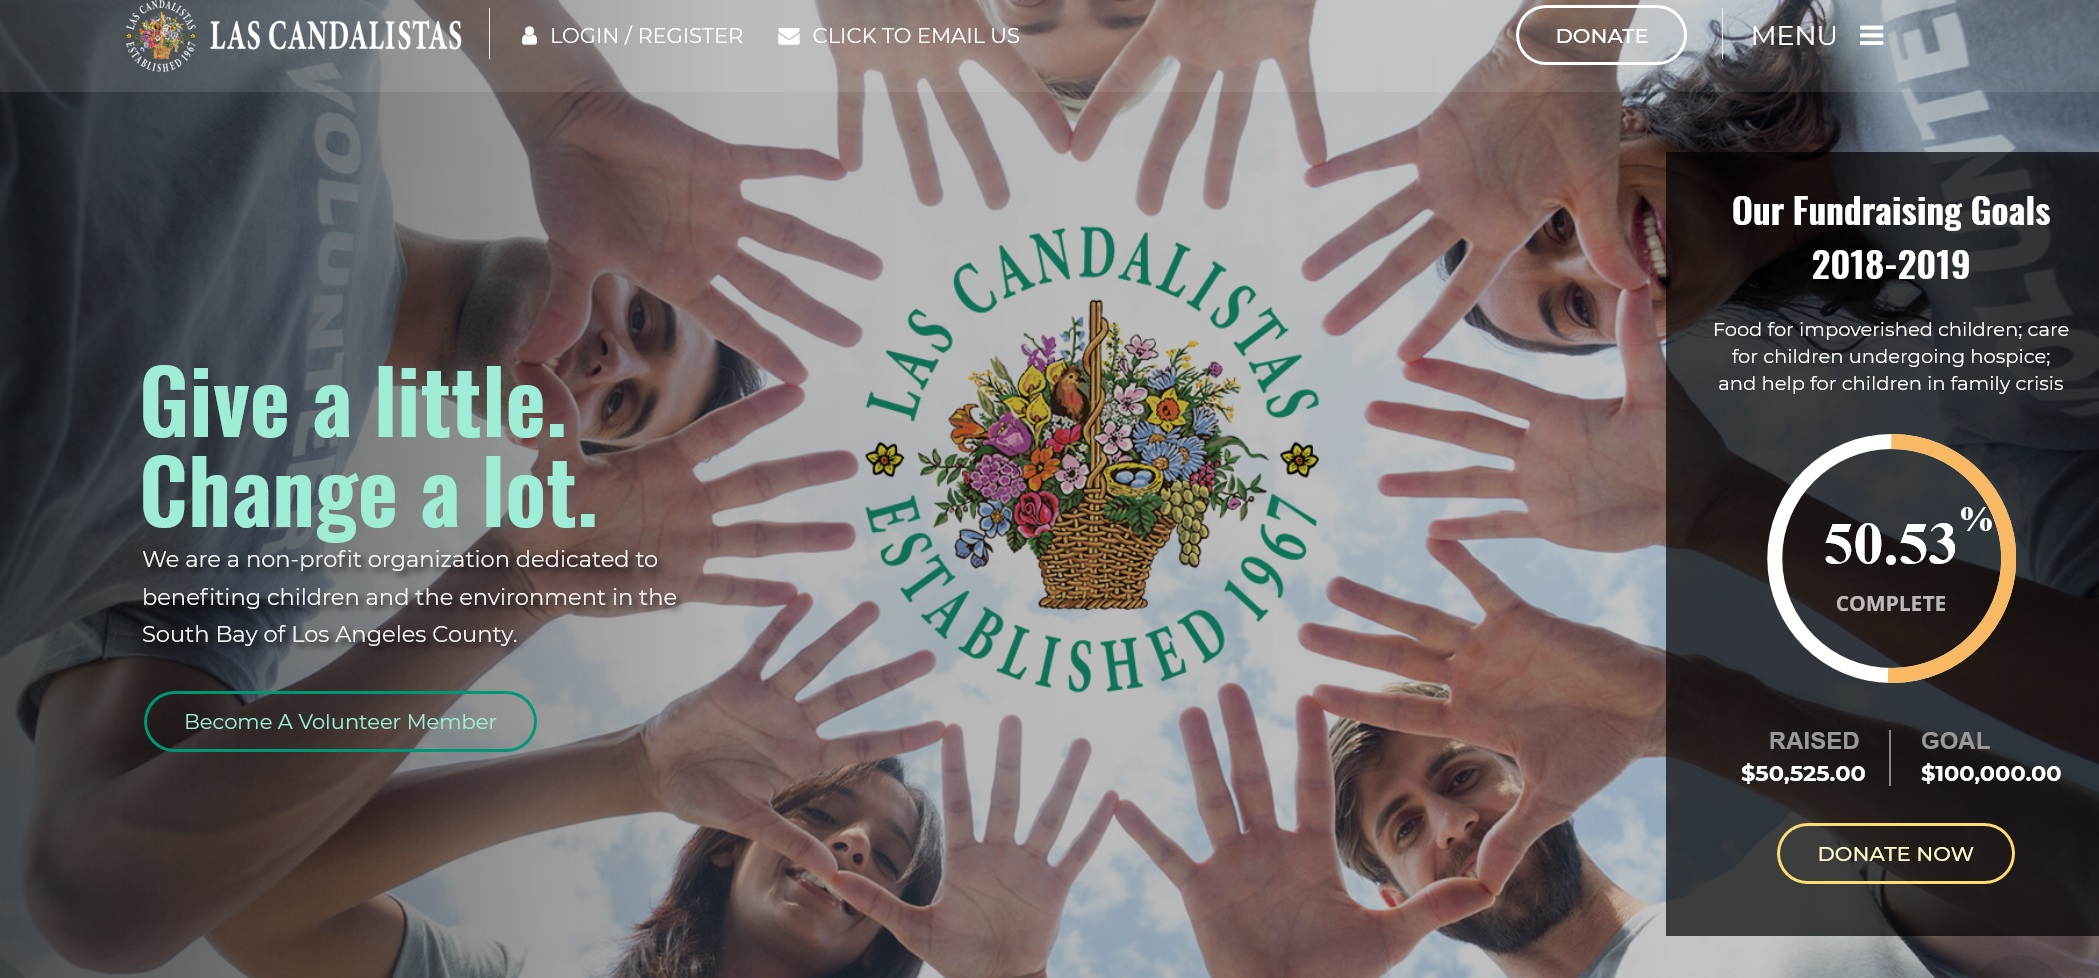 Las Candalistas Website Redesign